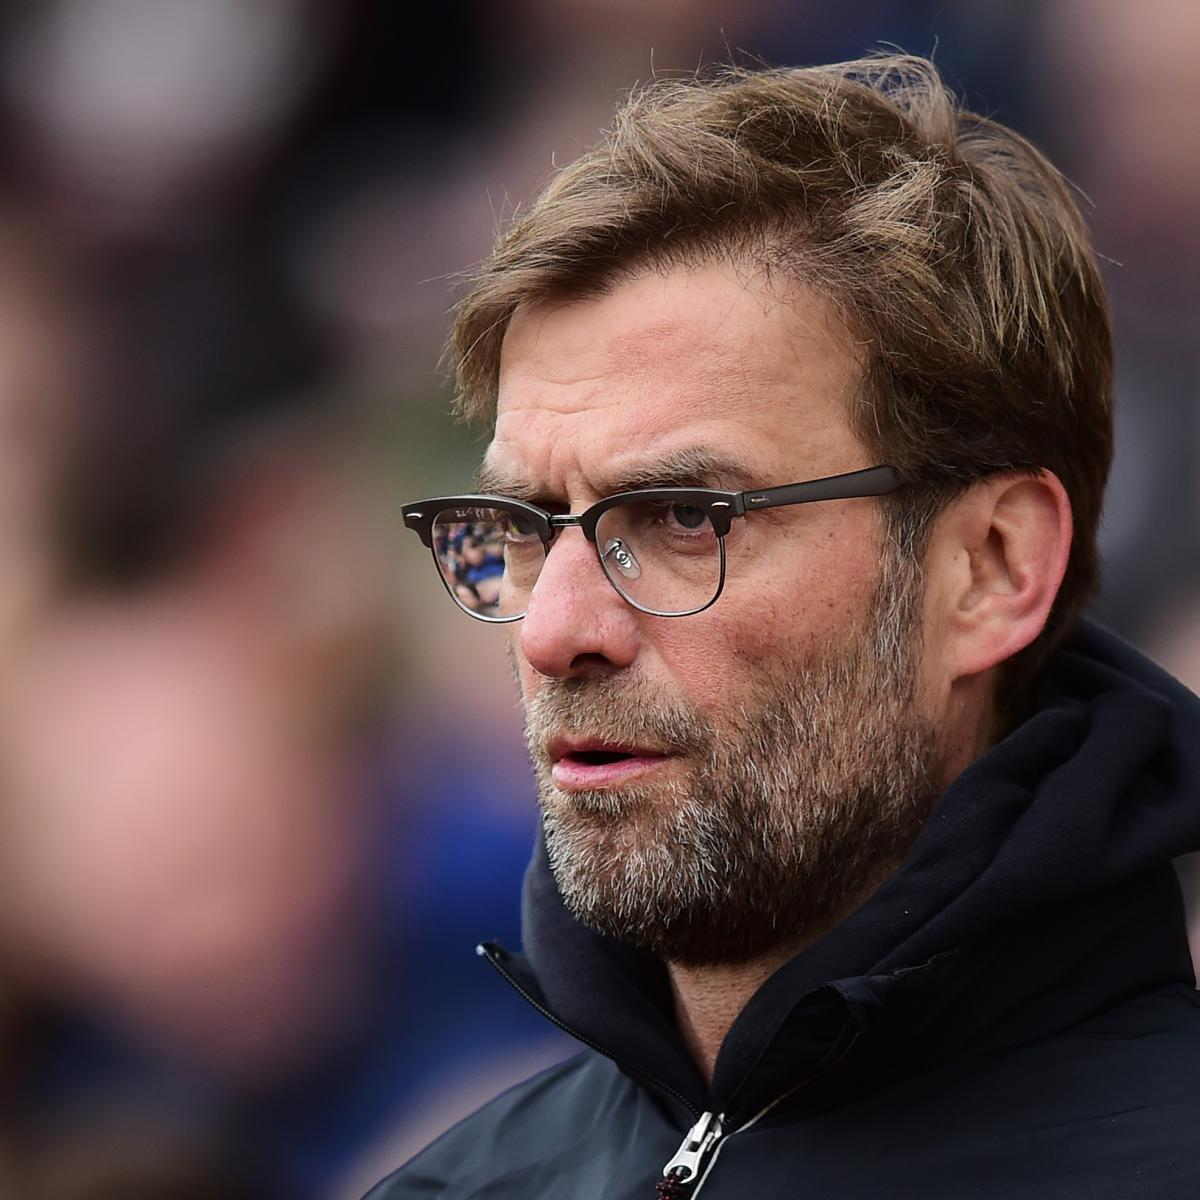 Marco Reus Hairstyle Name Jurgen Klopp Comments On Germany Mesut Ozil Marco Reus And More